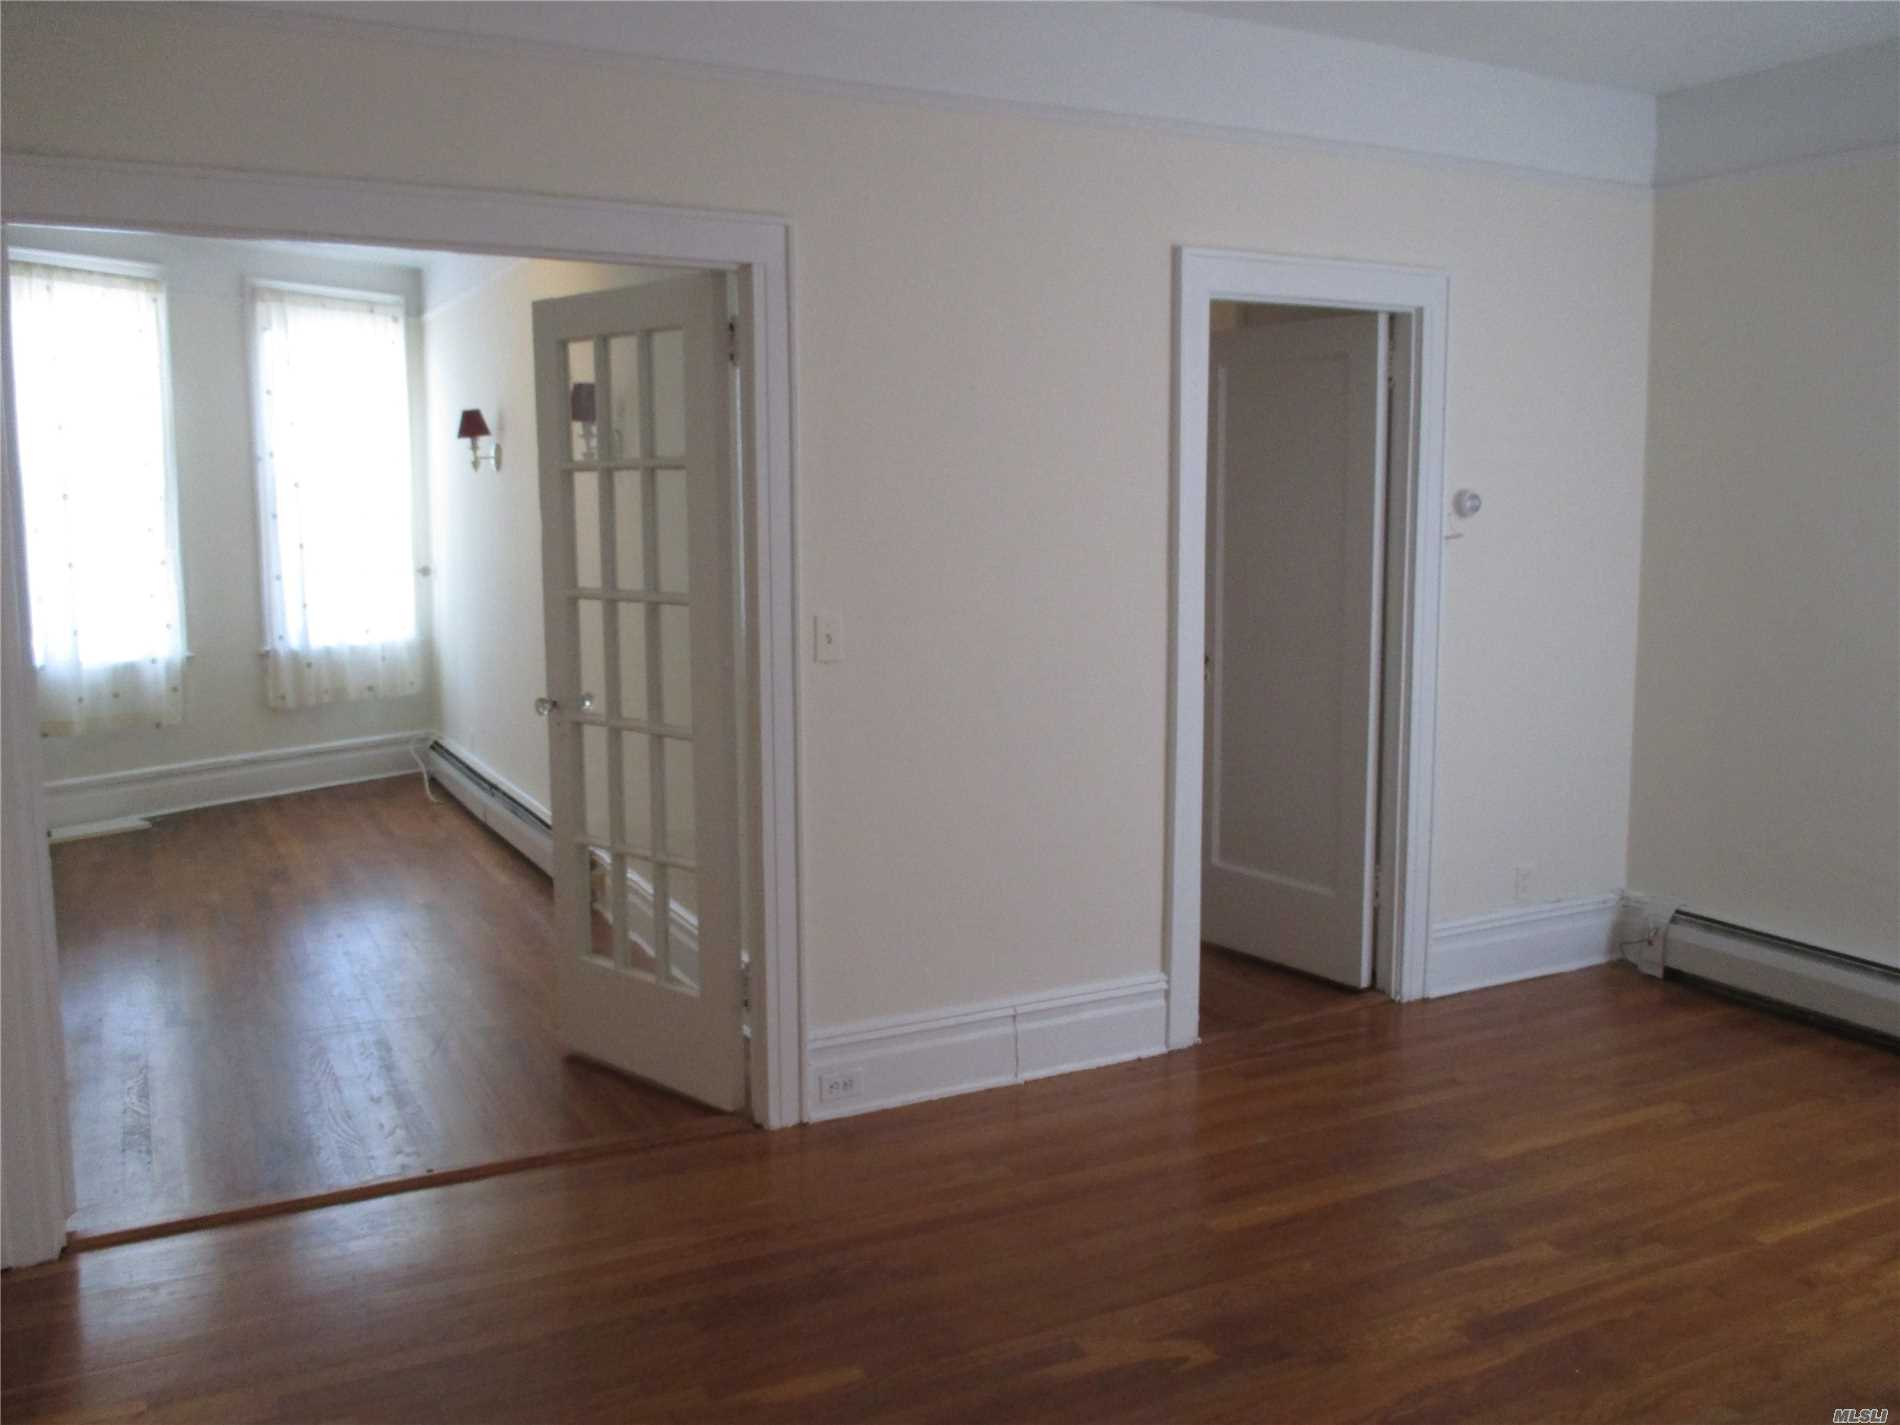 Second Floor, Front Apartment With Eat-In-Kitchen, 2 Bedrooms, 1 Full Bath. Small Pets Allowed.